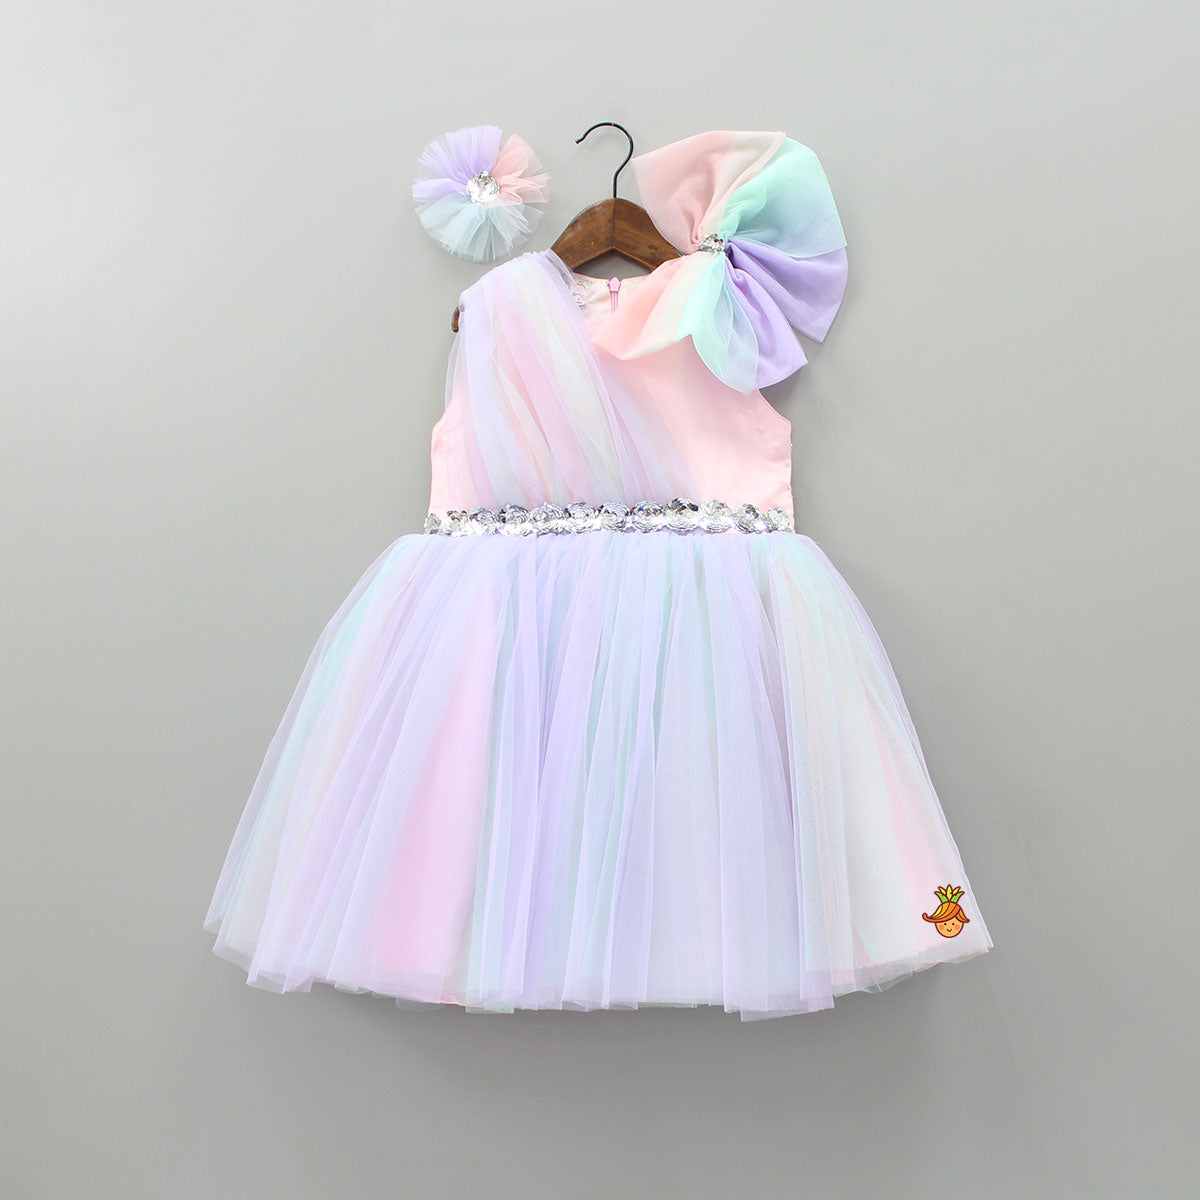 Pre Order: Bowy Shaded Party Dress With Hair Clip